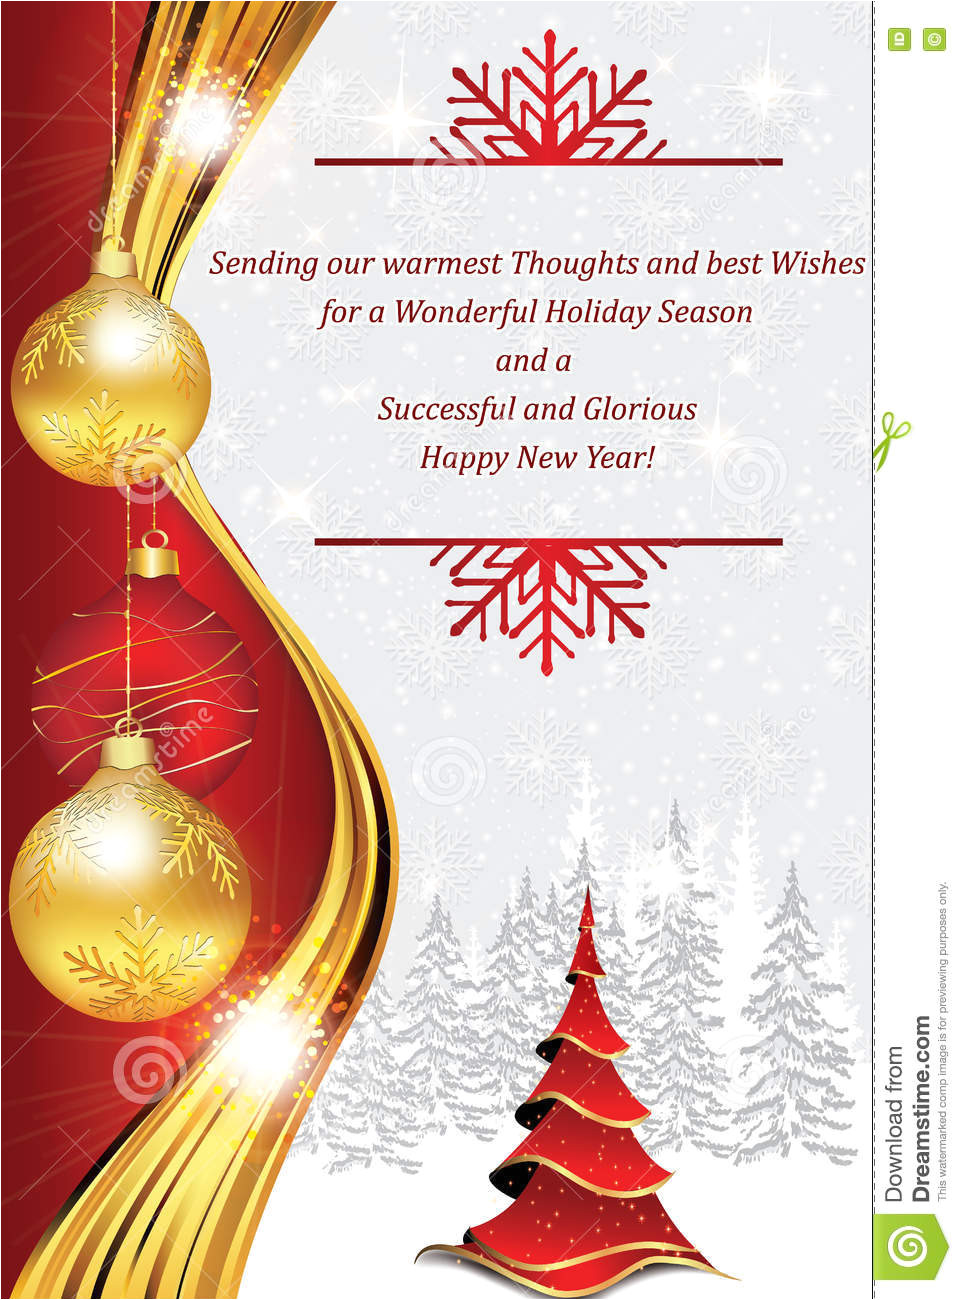 new year corporate greeting card business customers clients business partners employees copy space your text print 78417657 jpg